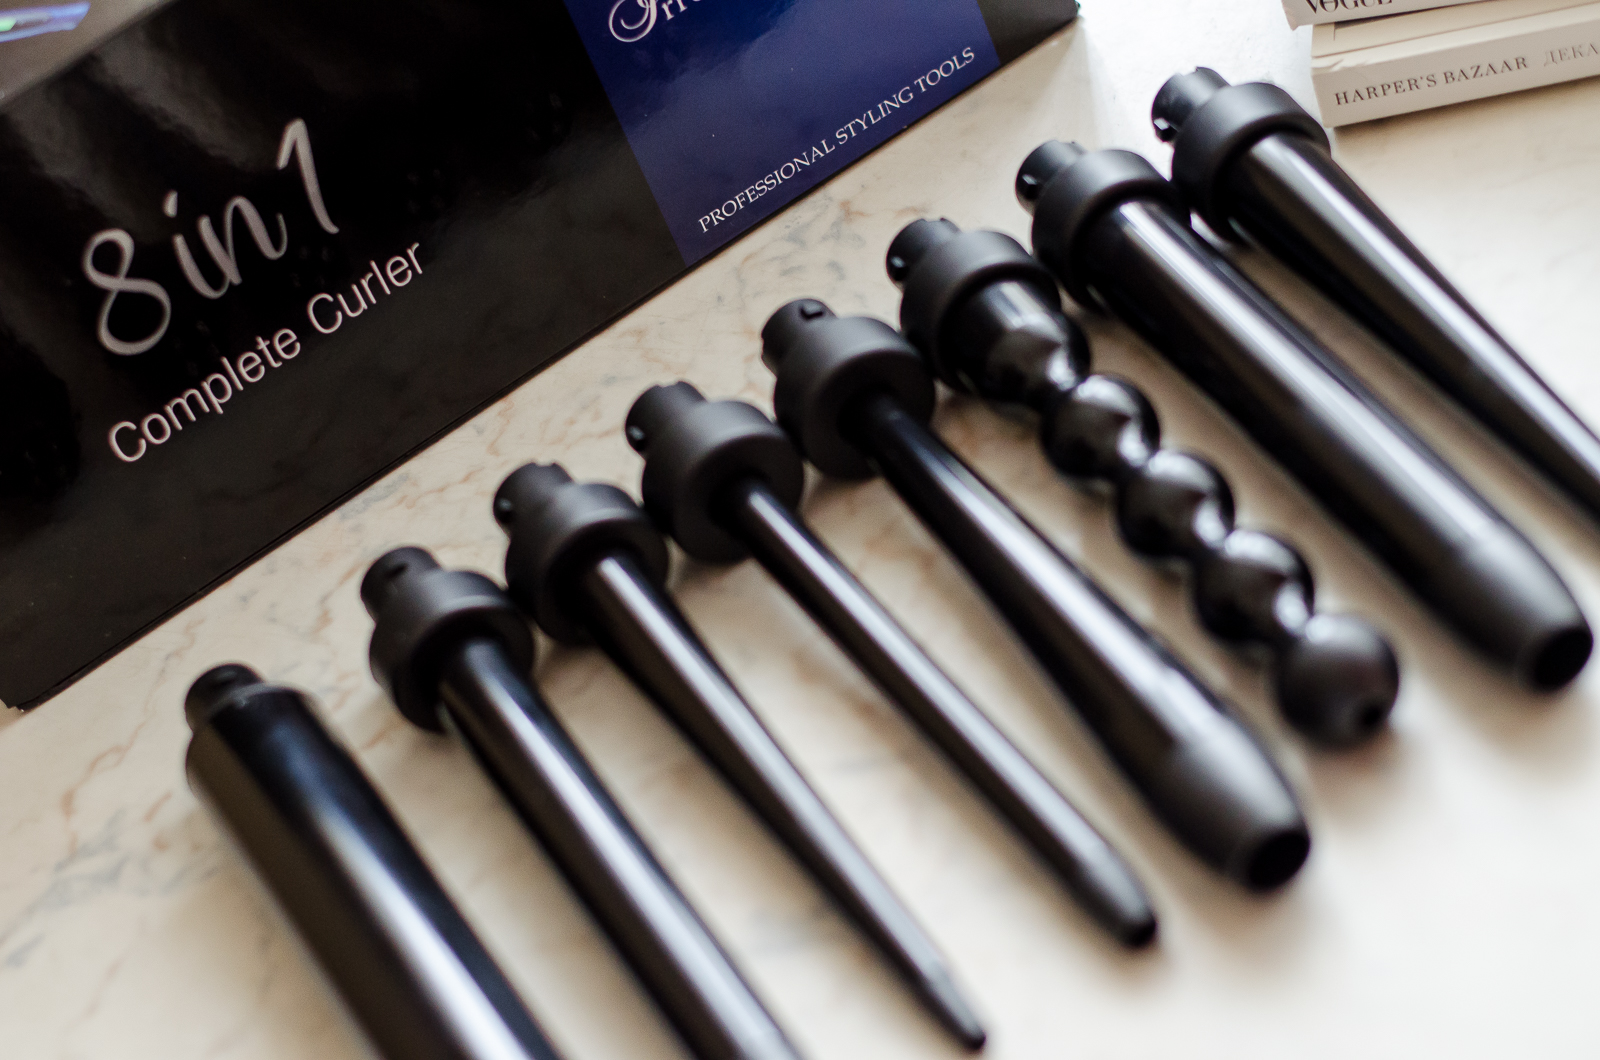 the best curling wand sapphire 8 in 1 irresistible me